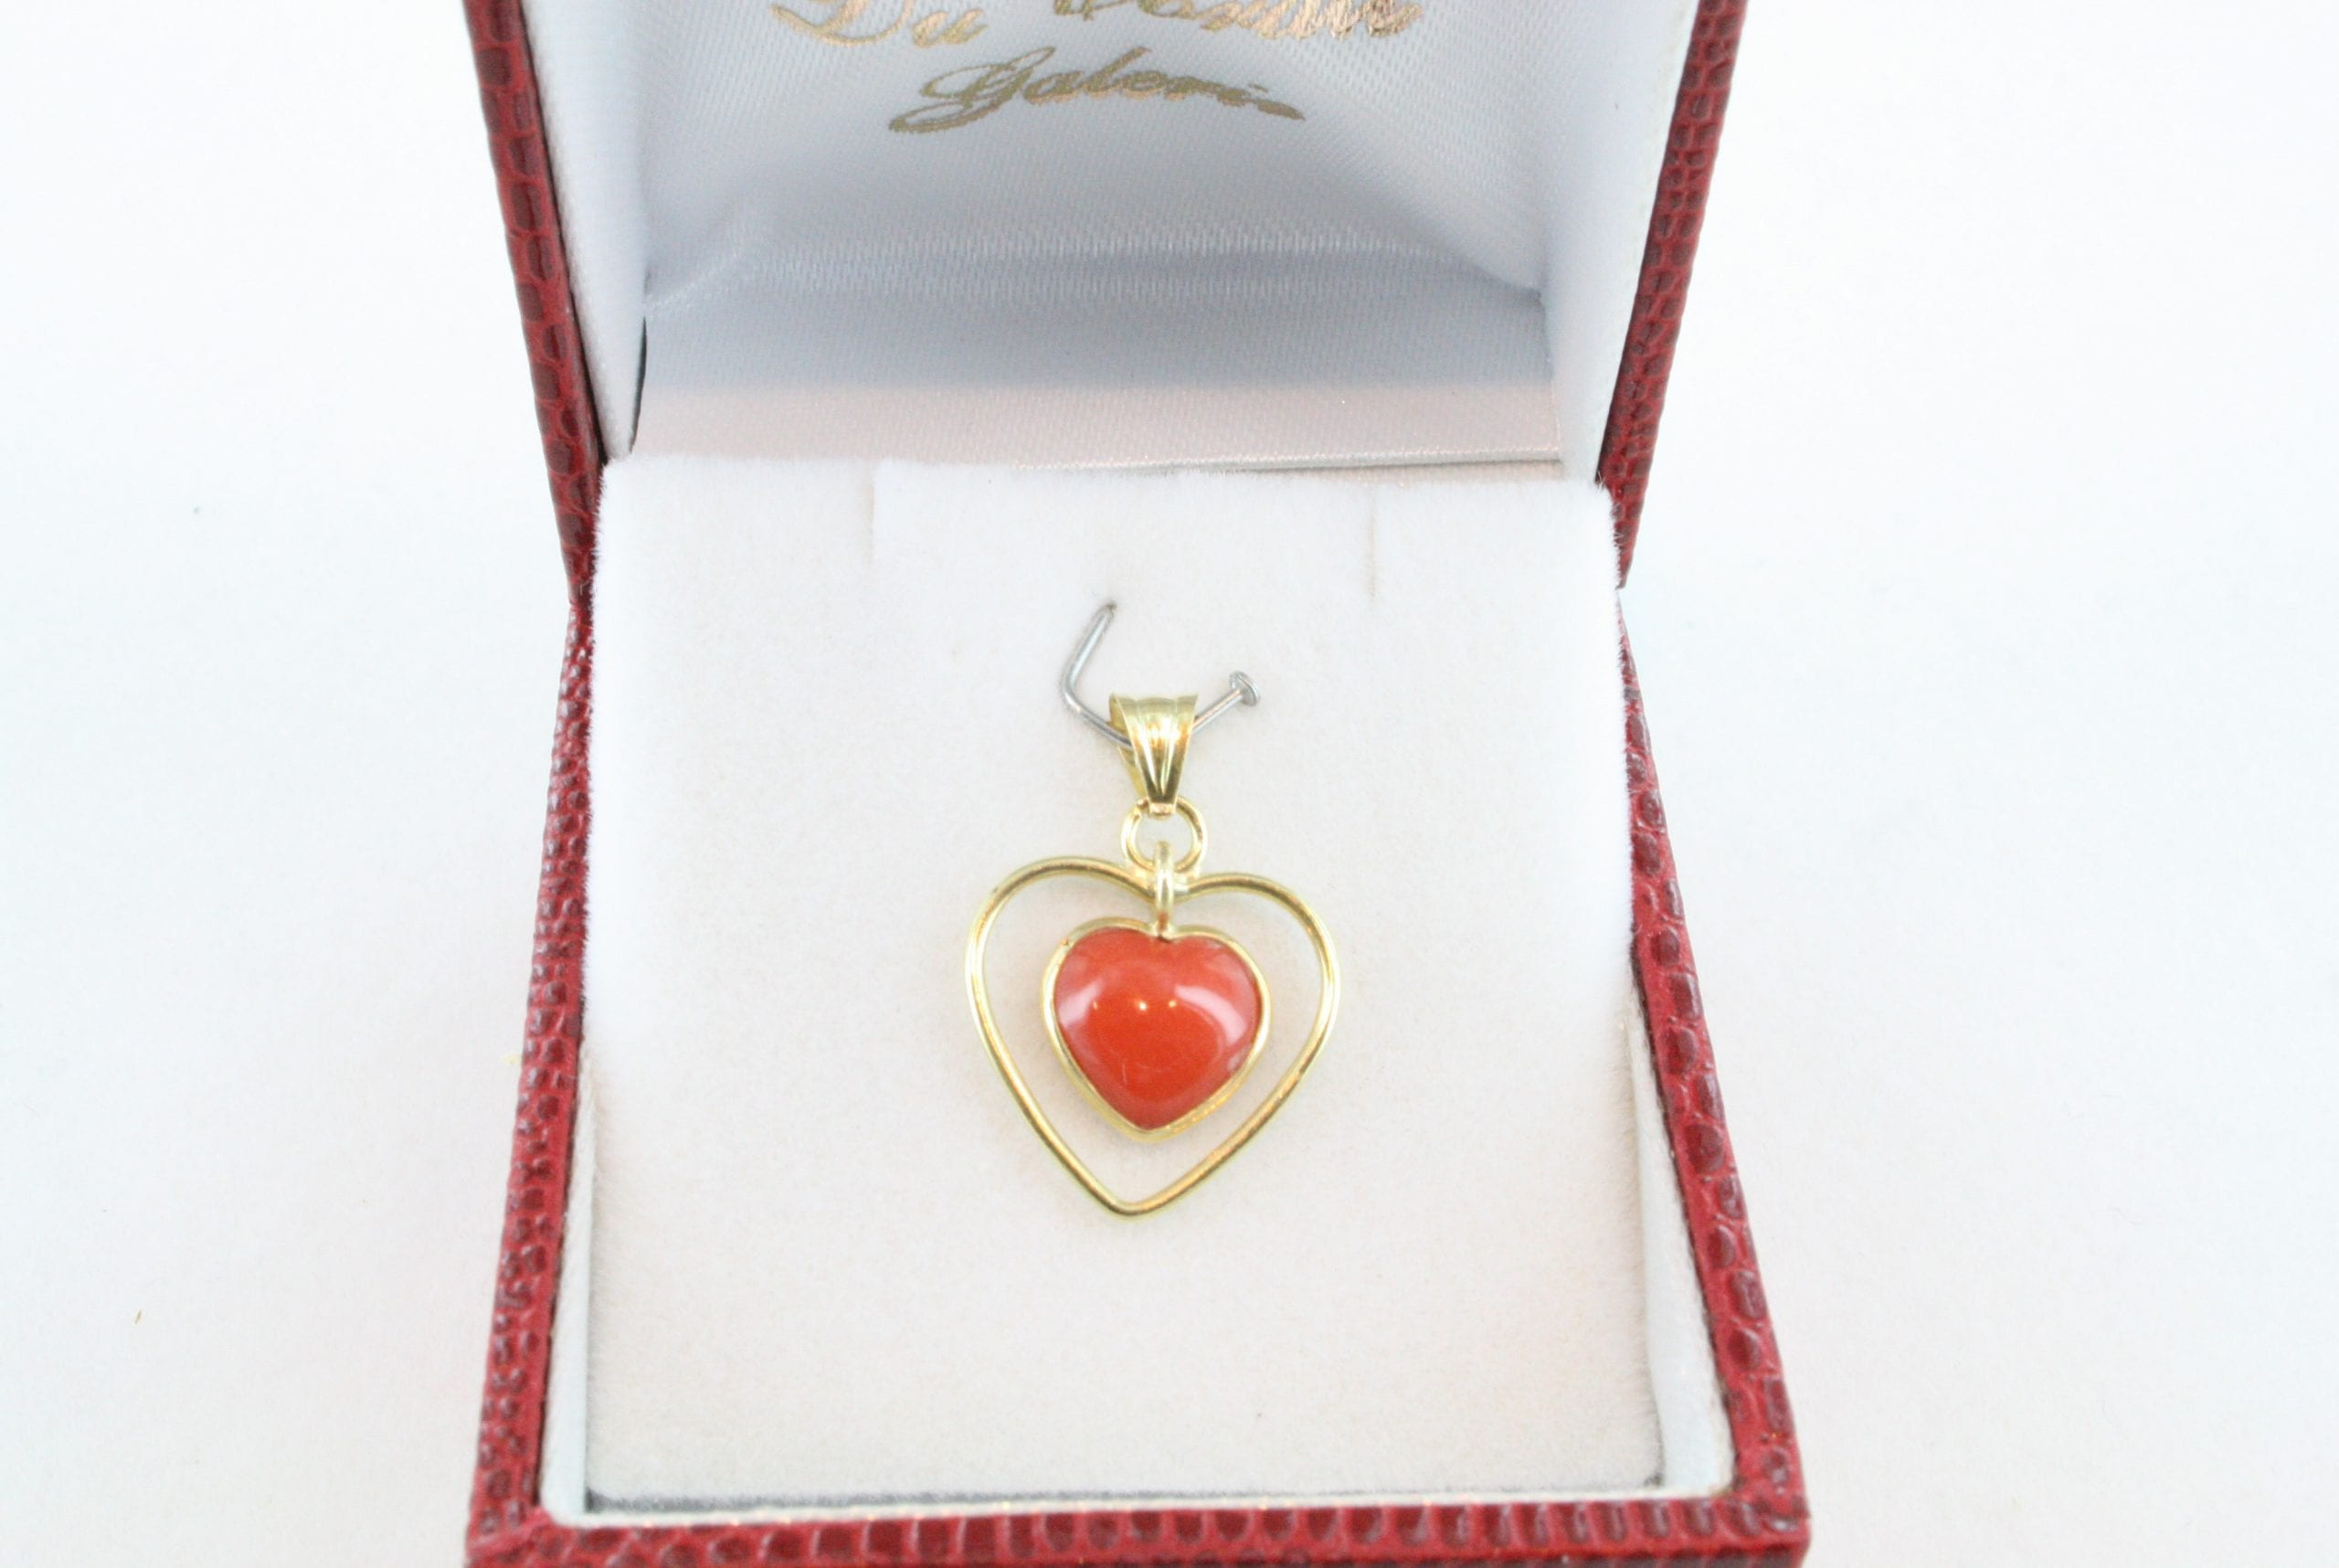 pendentif corail rouge et or PE-CO-OR-031